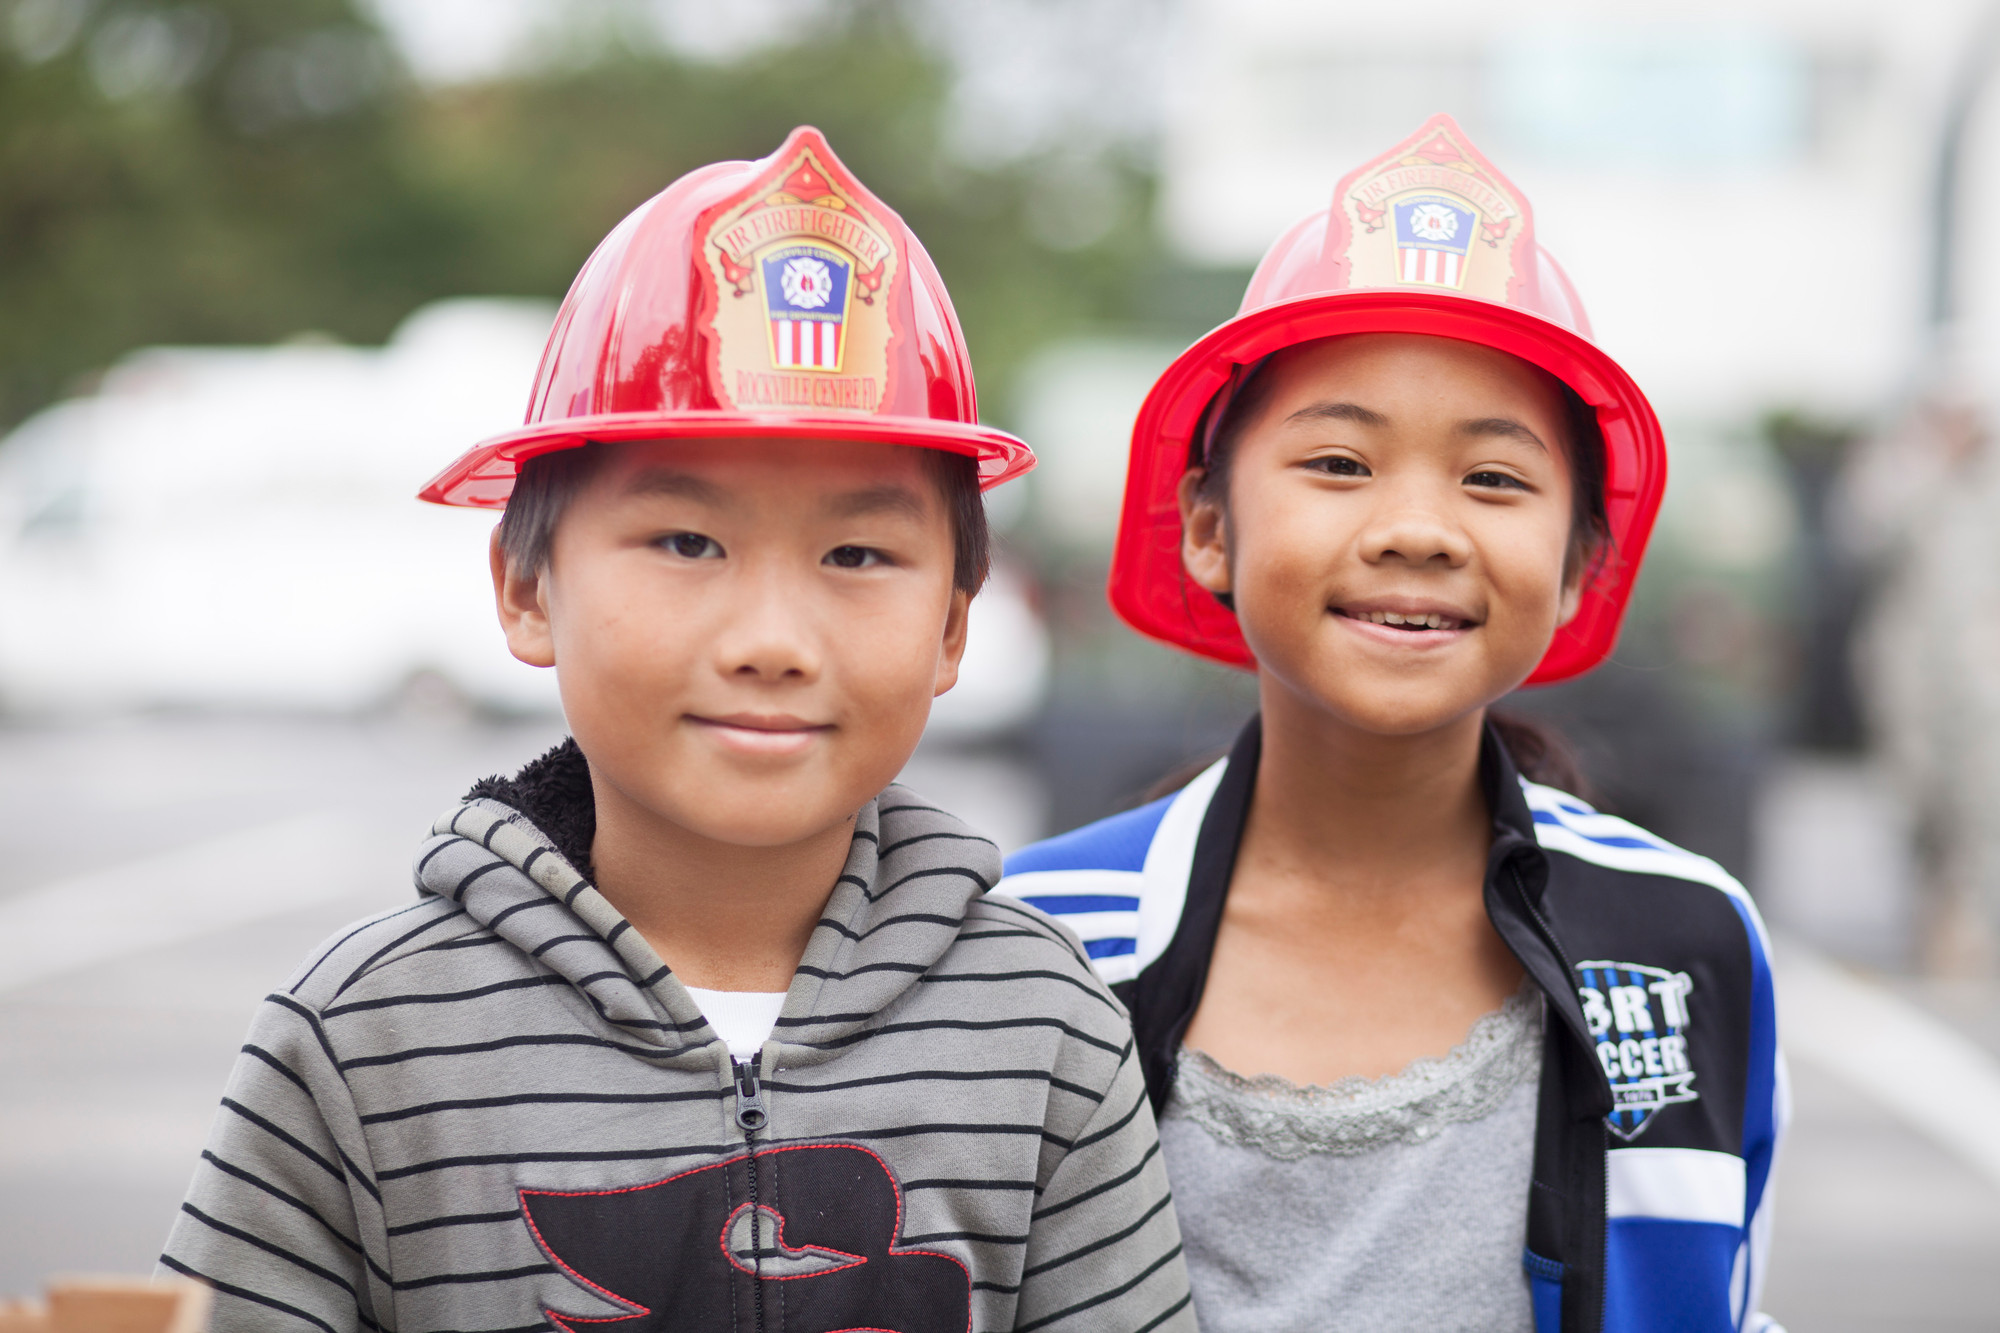 Joey and Valerie Hoffer showed their community spirt in with their official Rockville Centre Junior Firefighter hats.